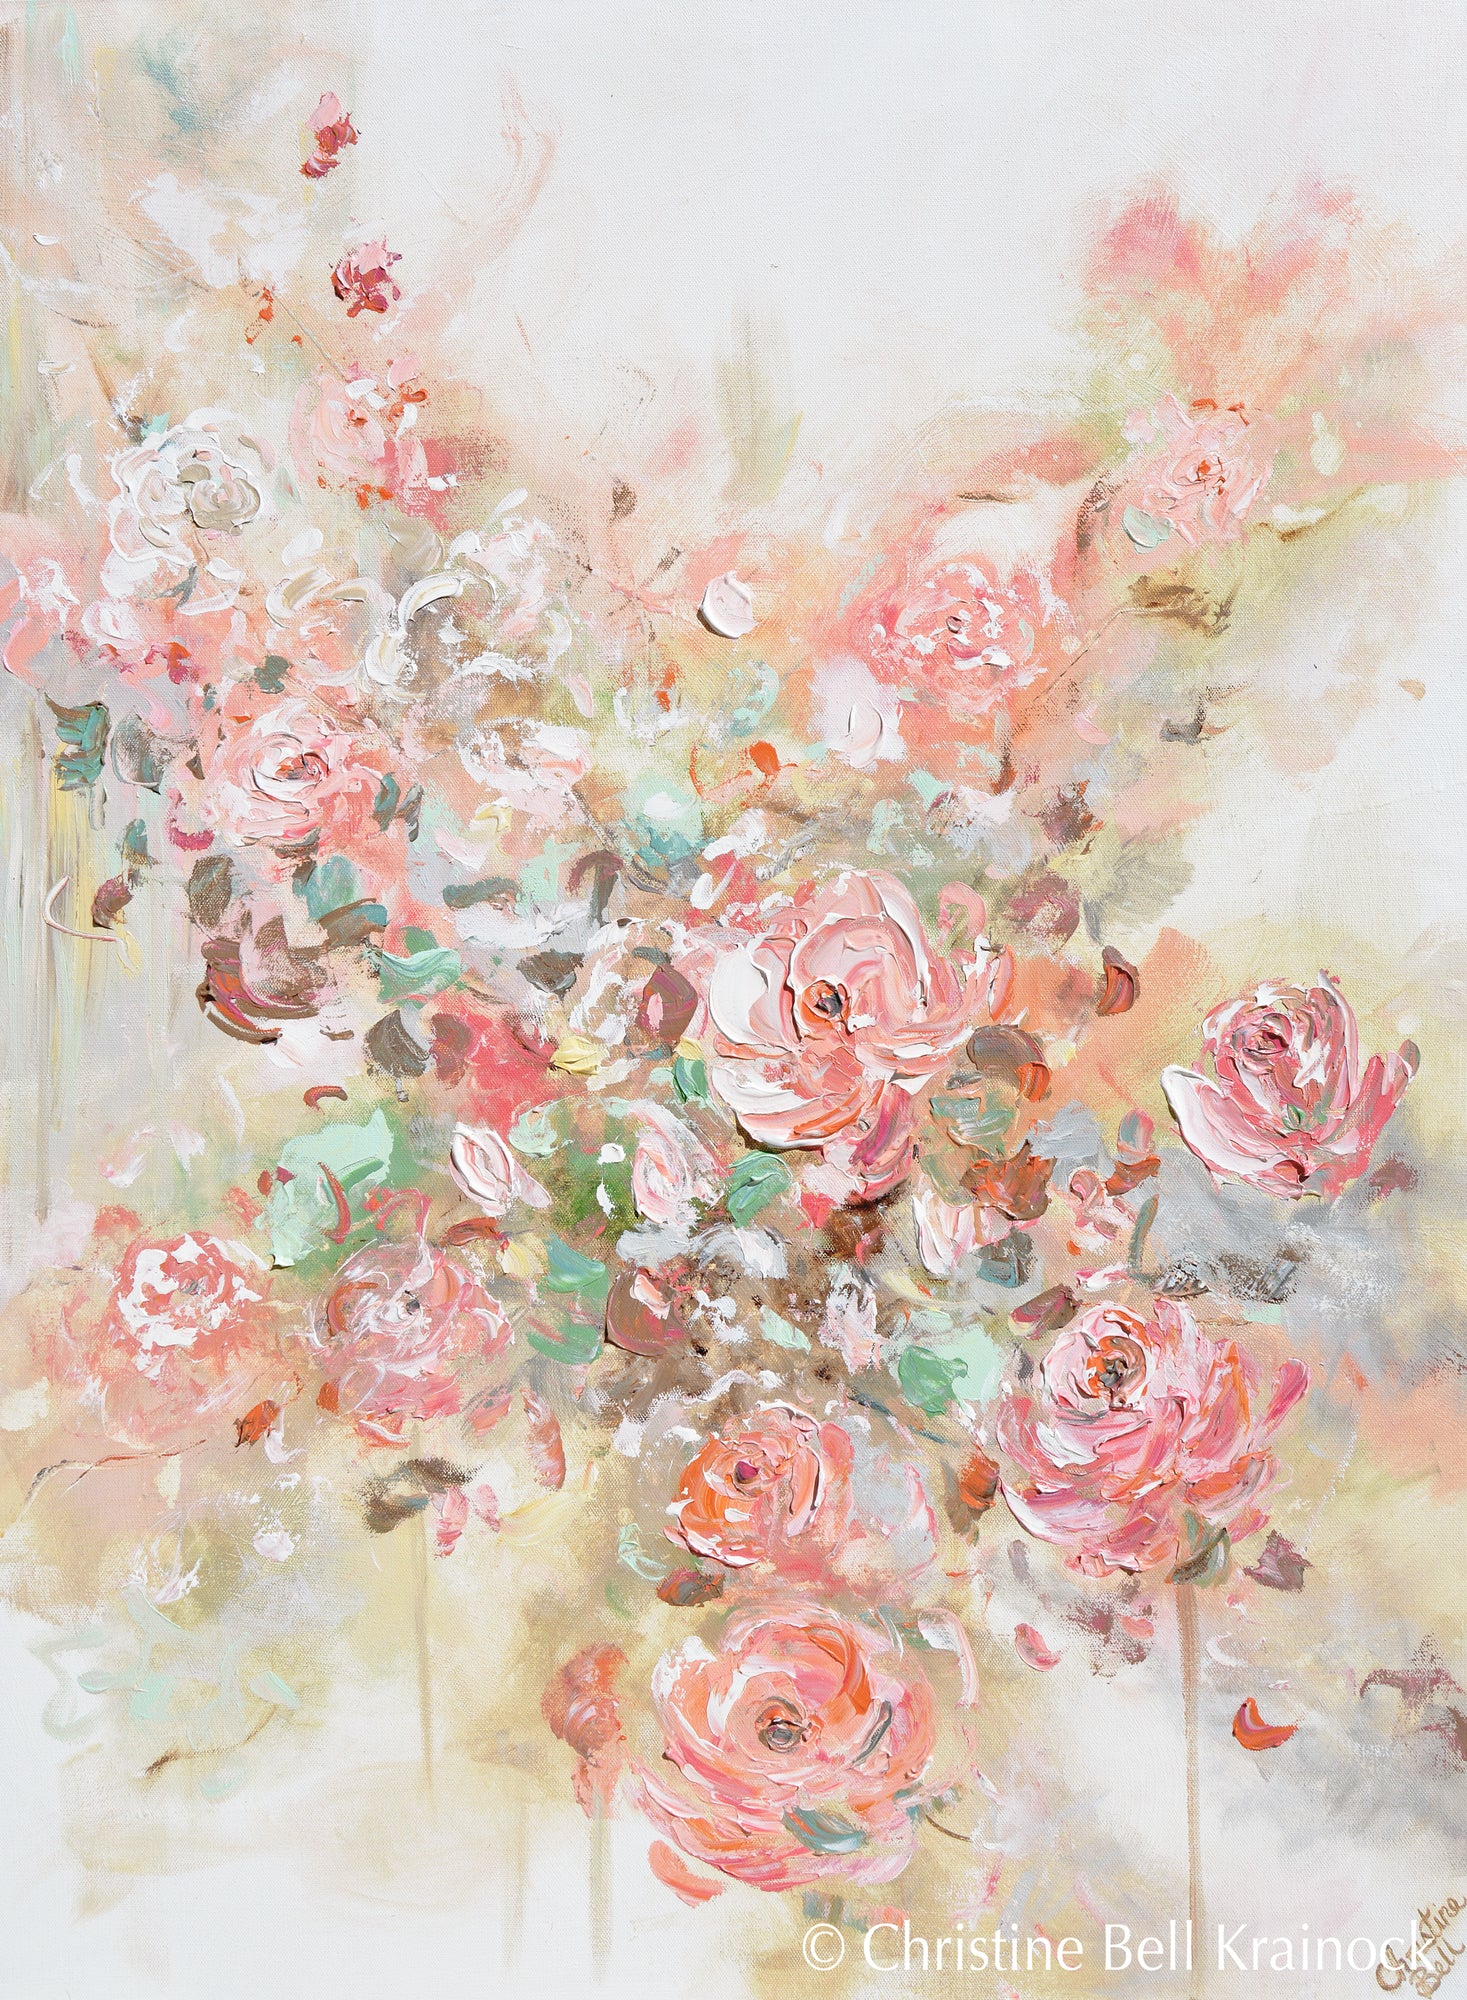 Original art abstract floral painting textured pink flowers coral peach roses wall decor 30x40